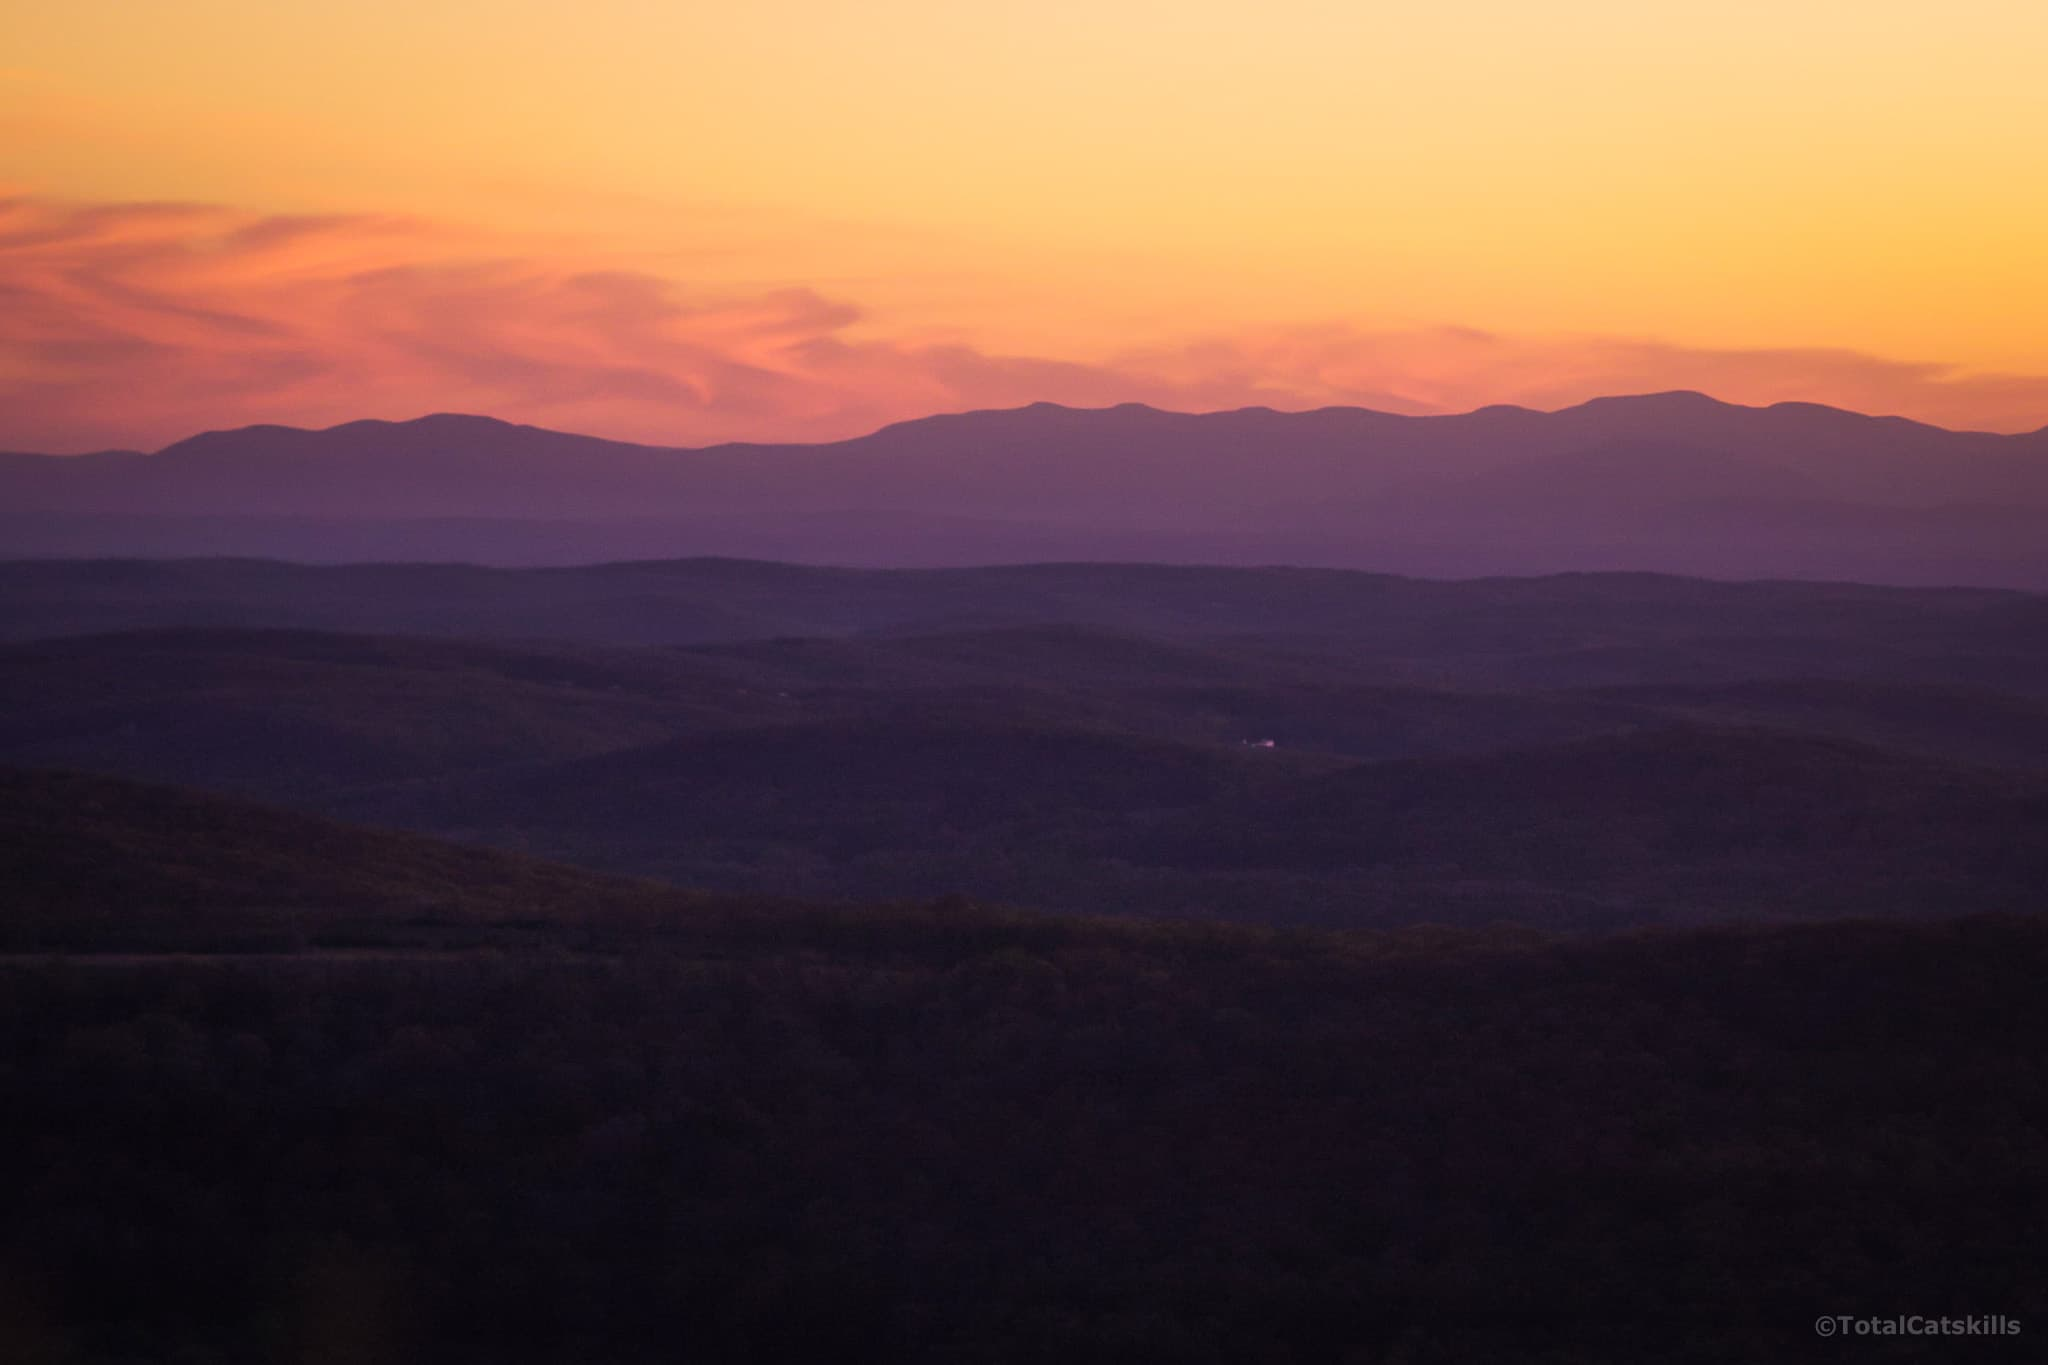 mountain range in distance at sunset